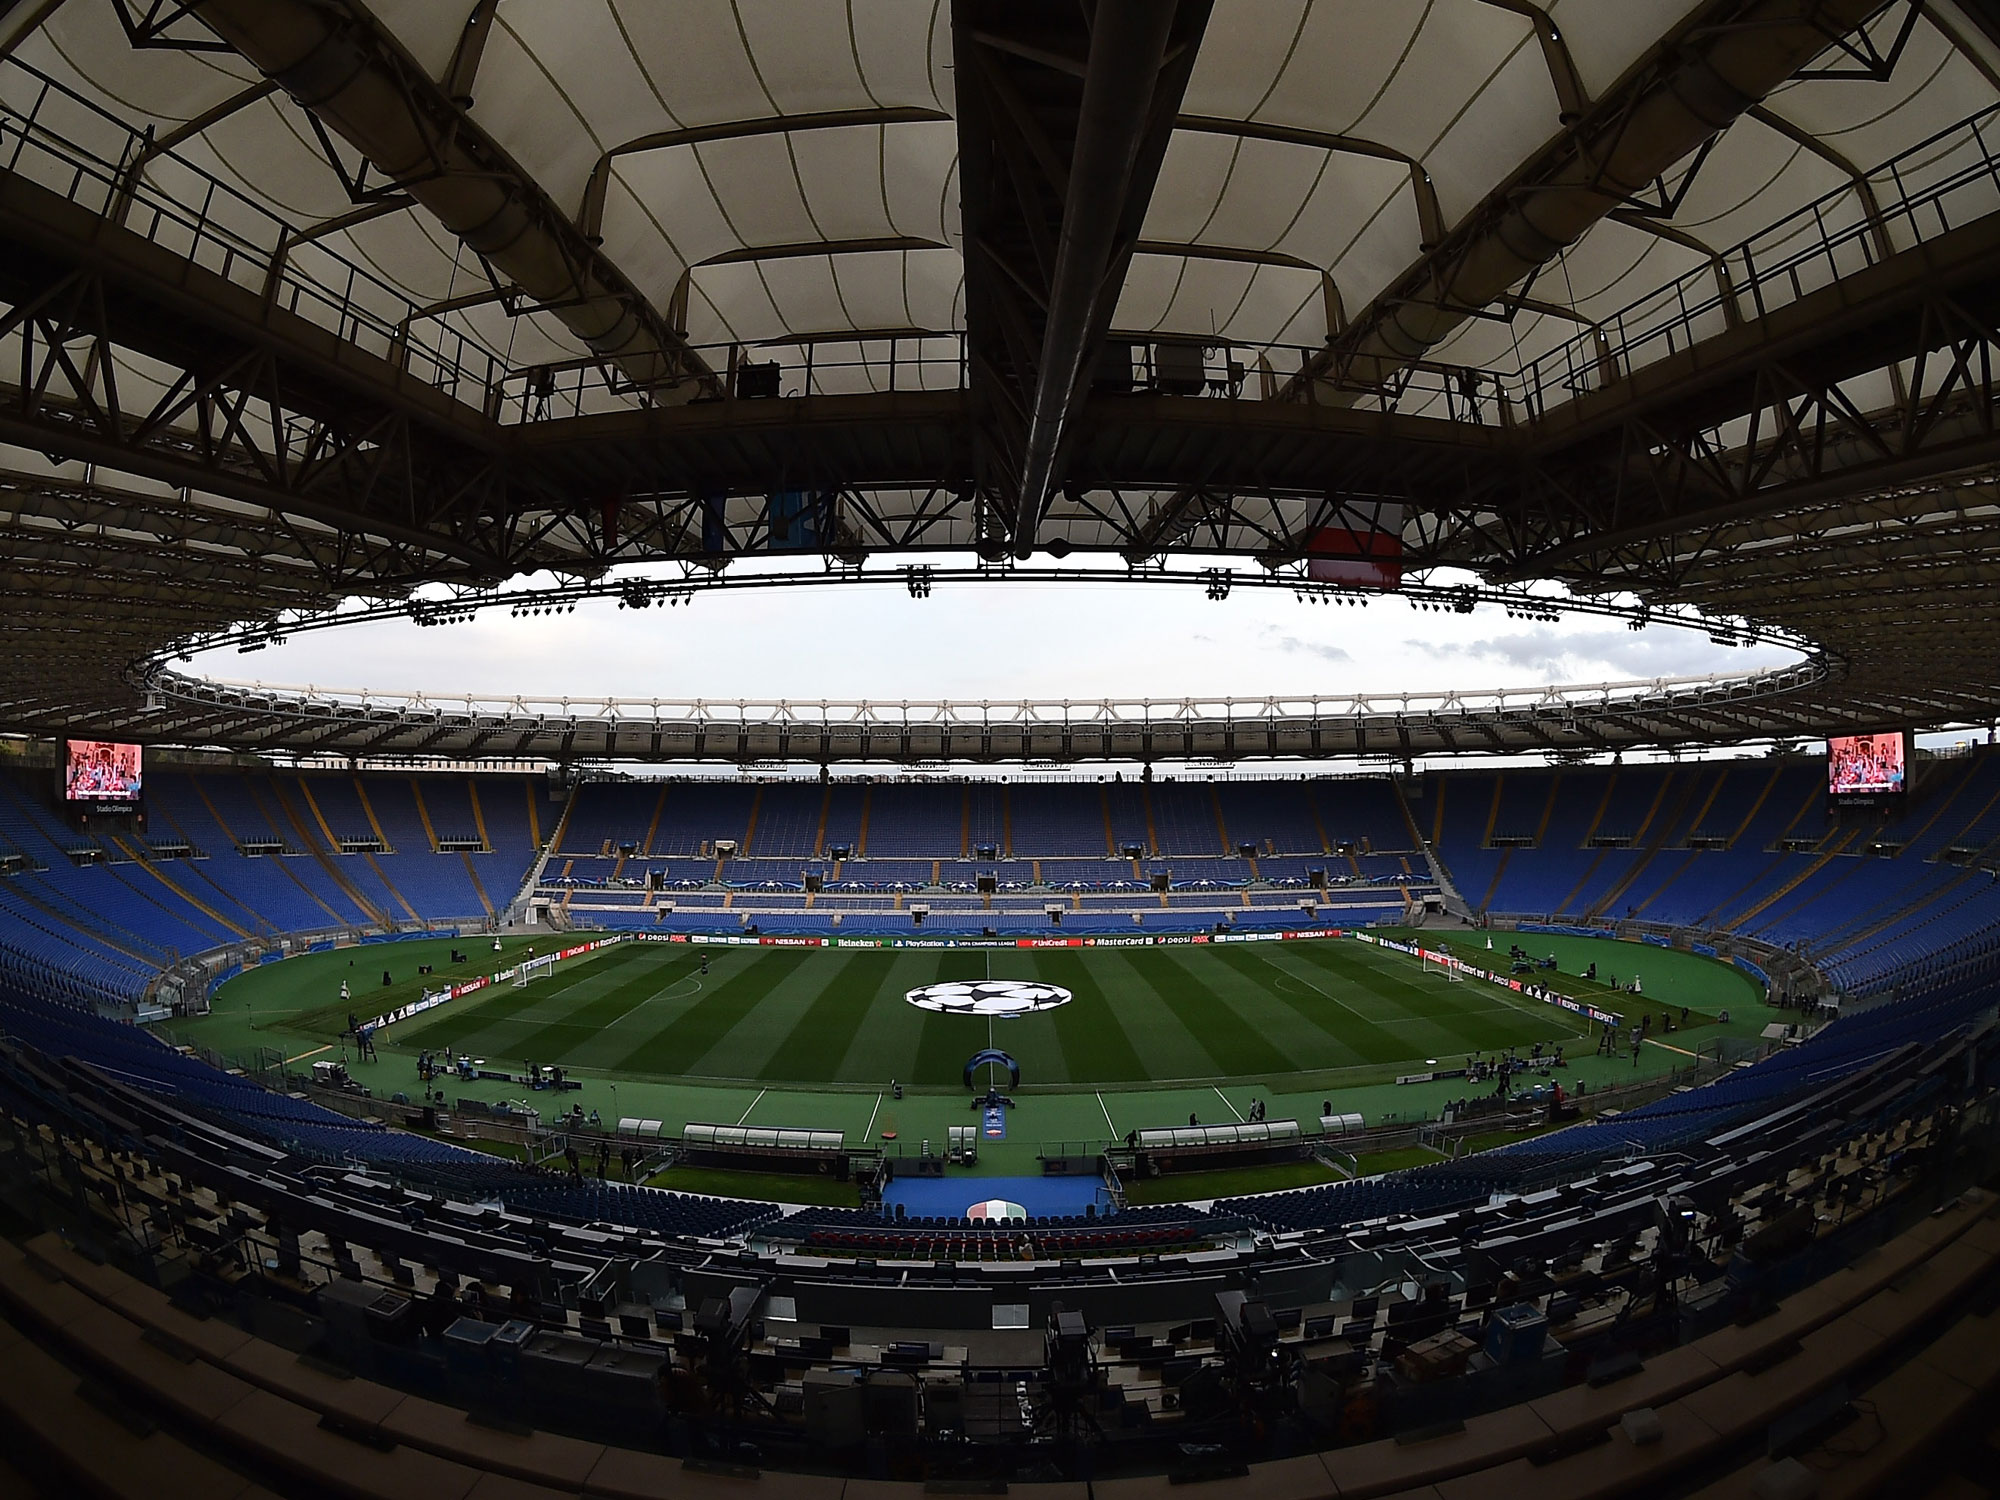 Stadio Olimpico in Rome is the home of AS Roma